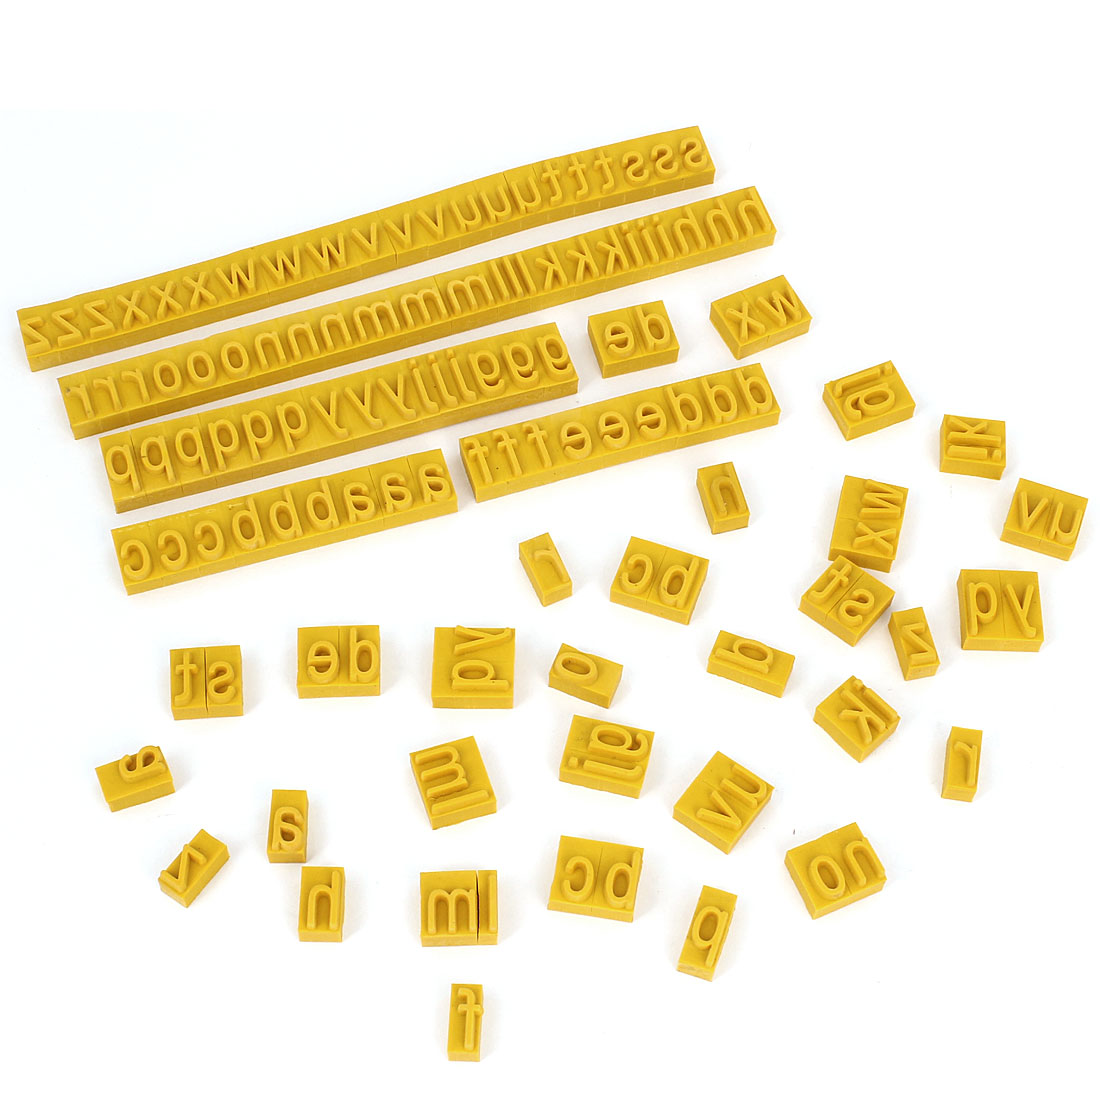 3 Sets 7mm Thick Letter Rubber Stamp Coder for Ink Stamping Machine